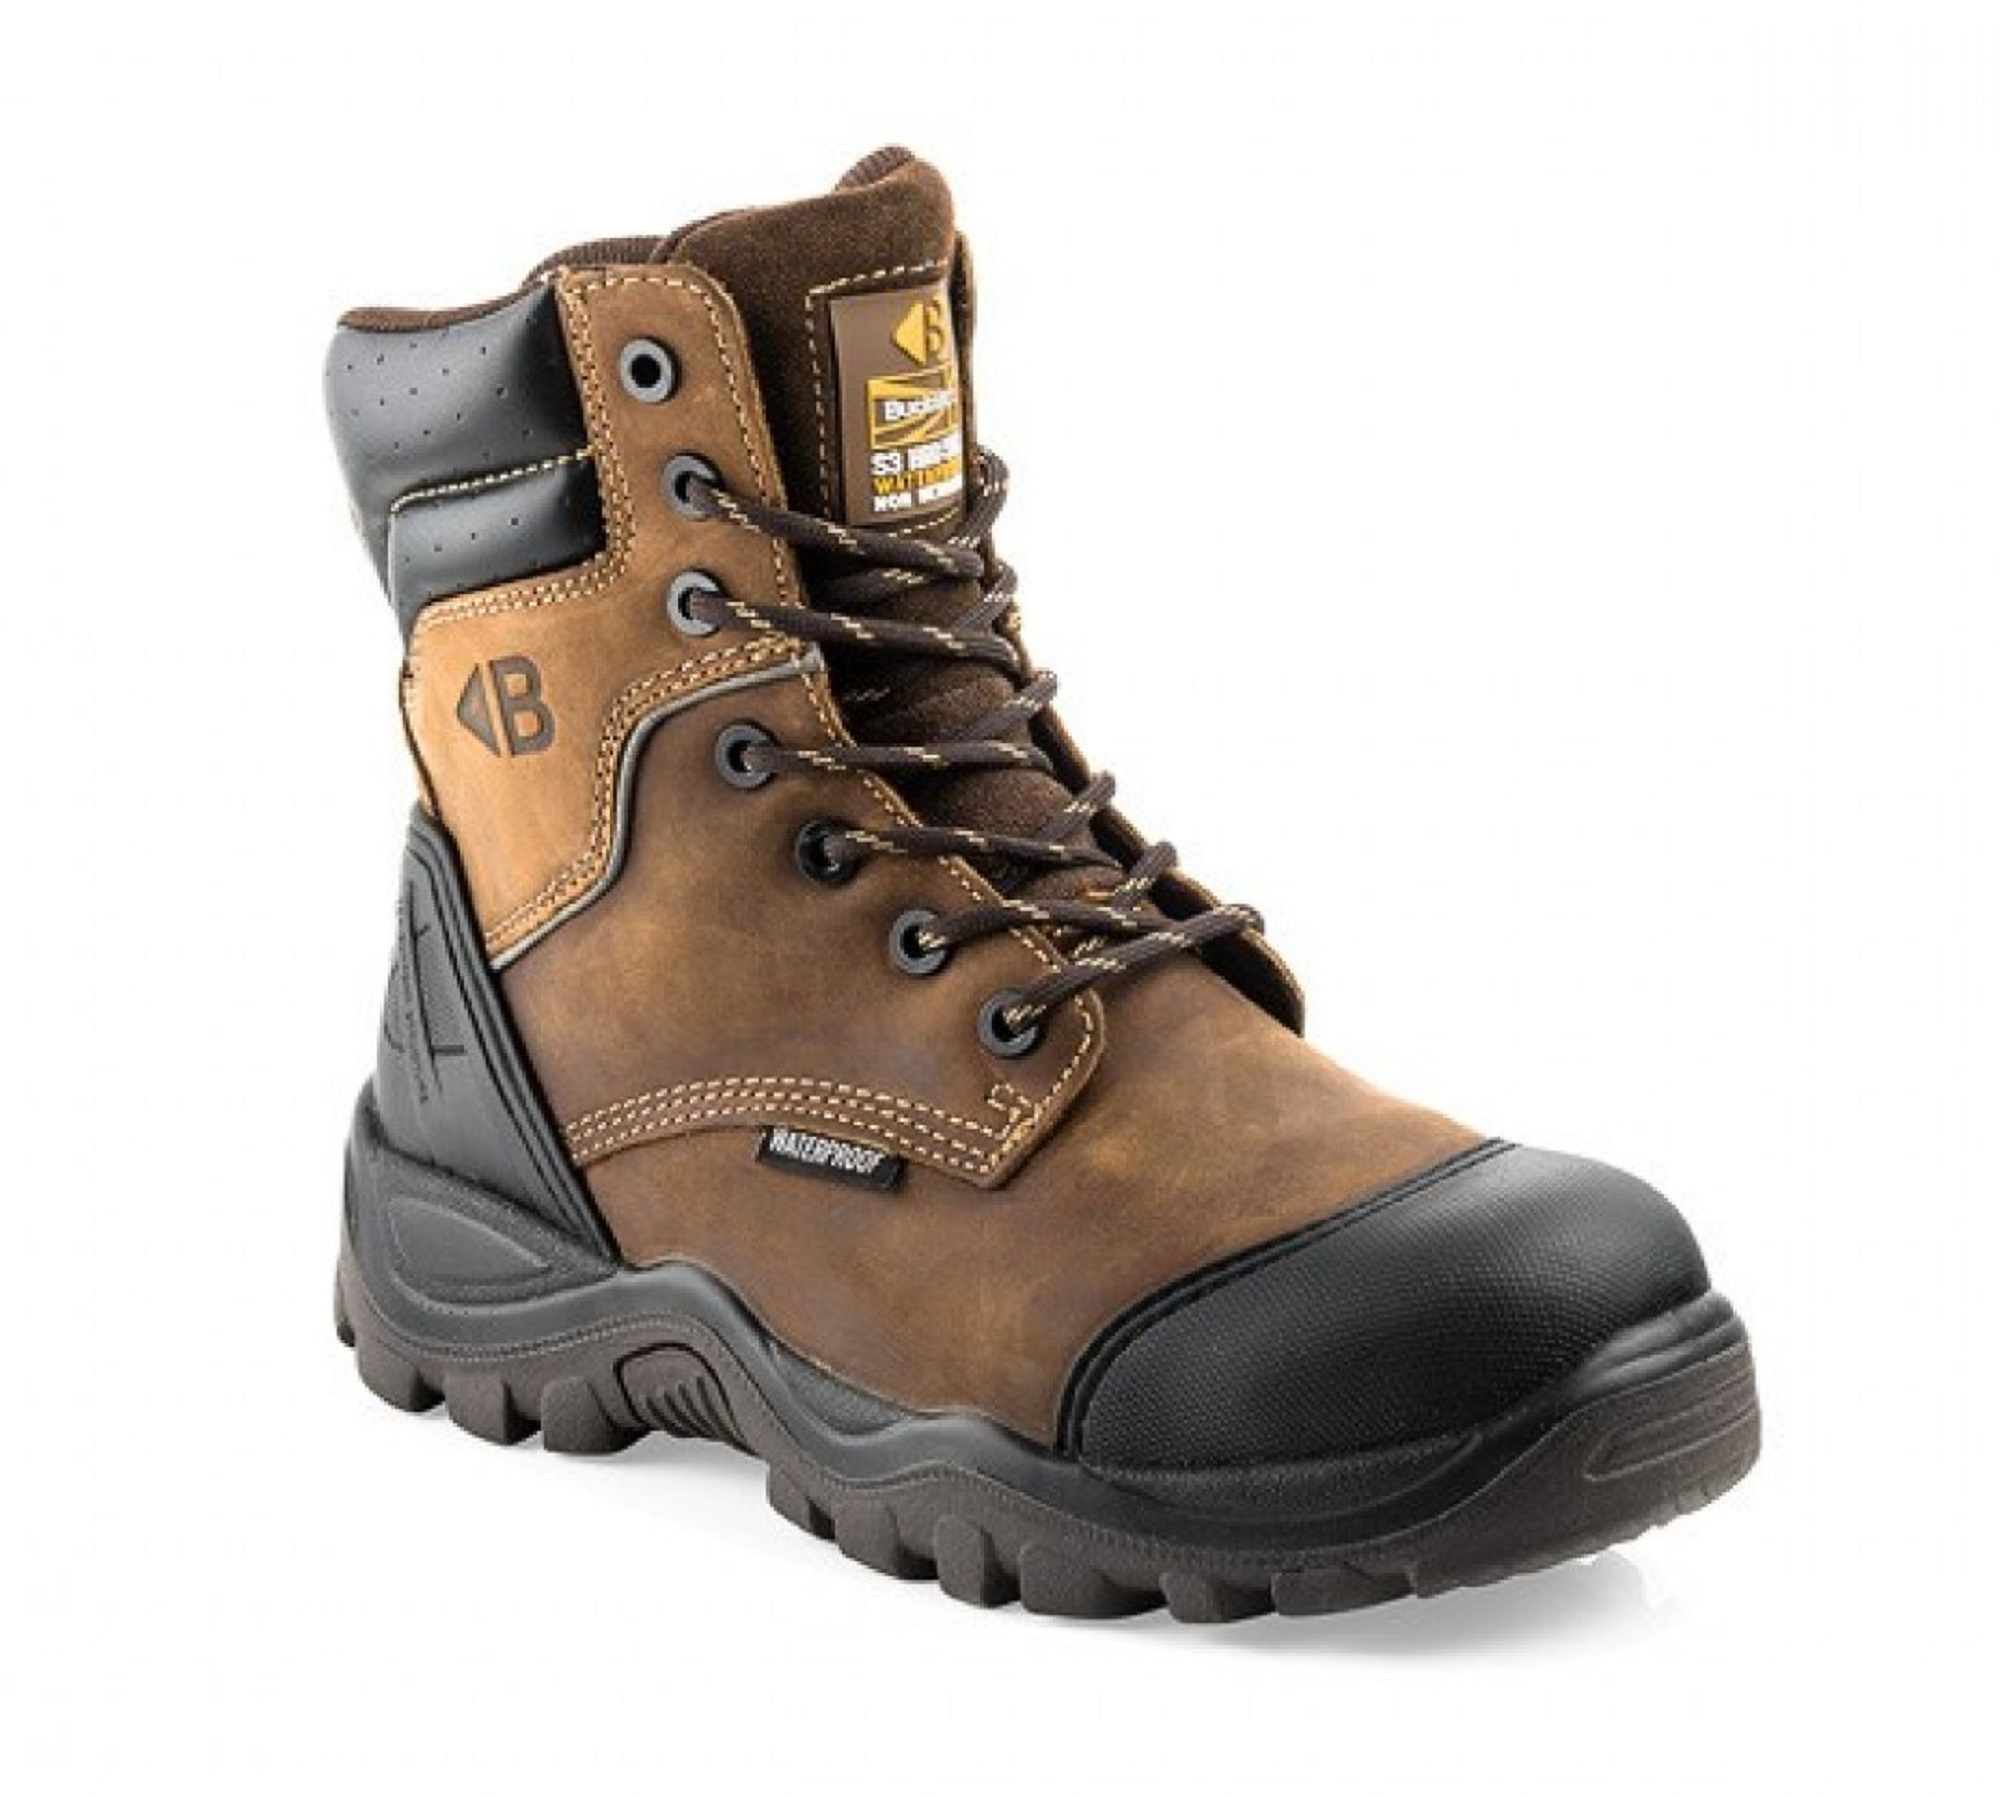 Dark brown leather Buckler BSH008WPNM zip/lace safety boot with Buckler logo on tongue and contrasting tan stitching